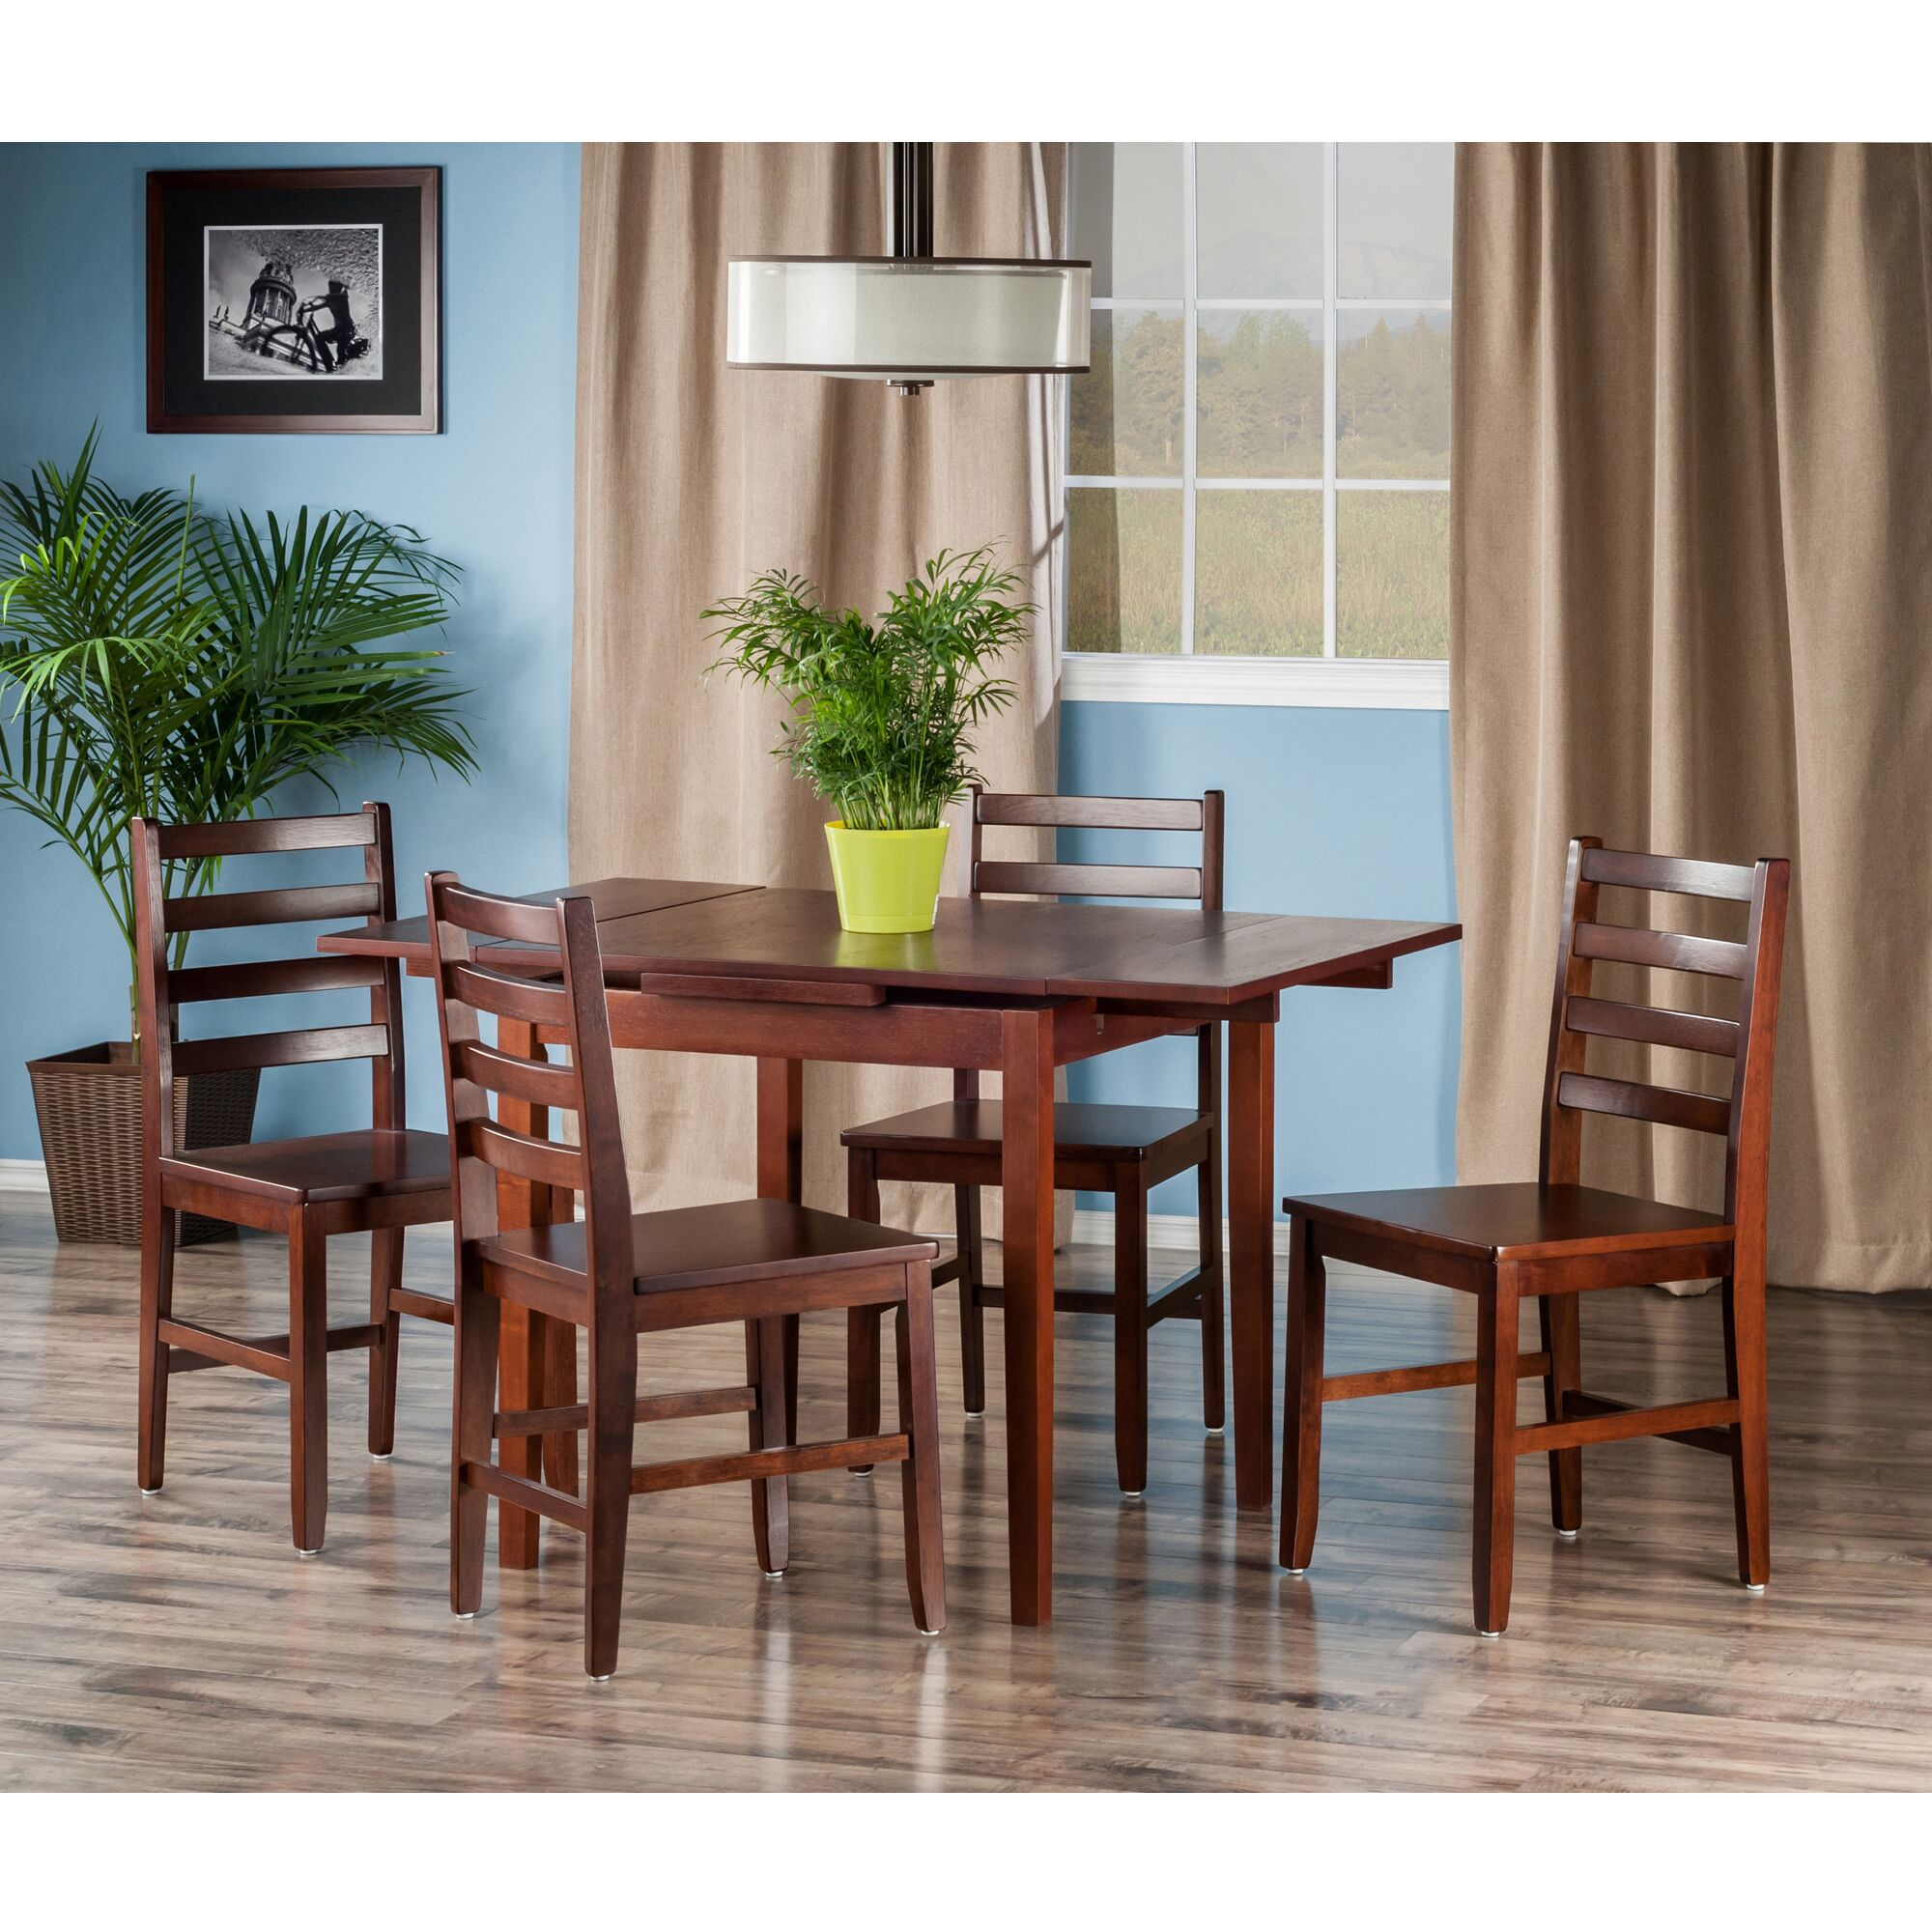 Dining Table Sets Shaws 5 Piece Extendable Dining Set